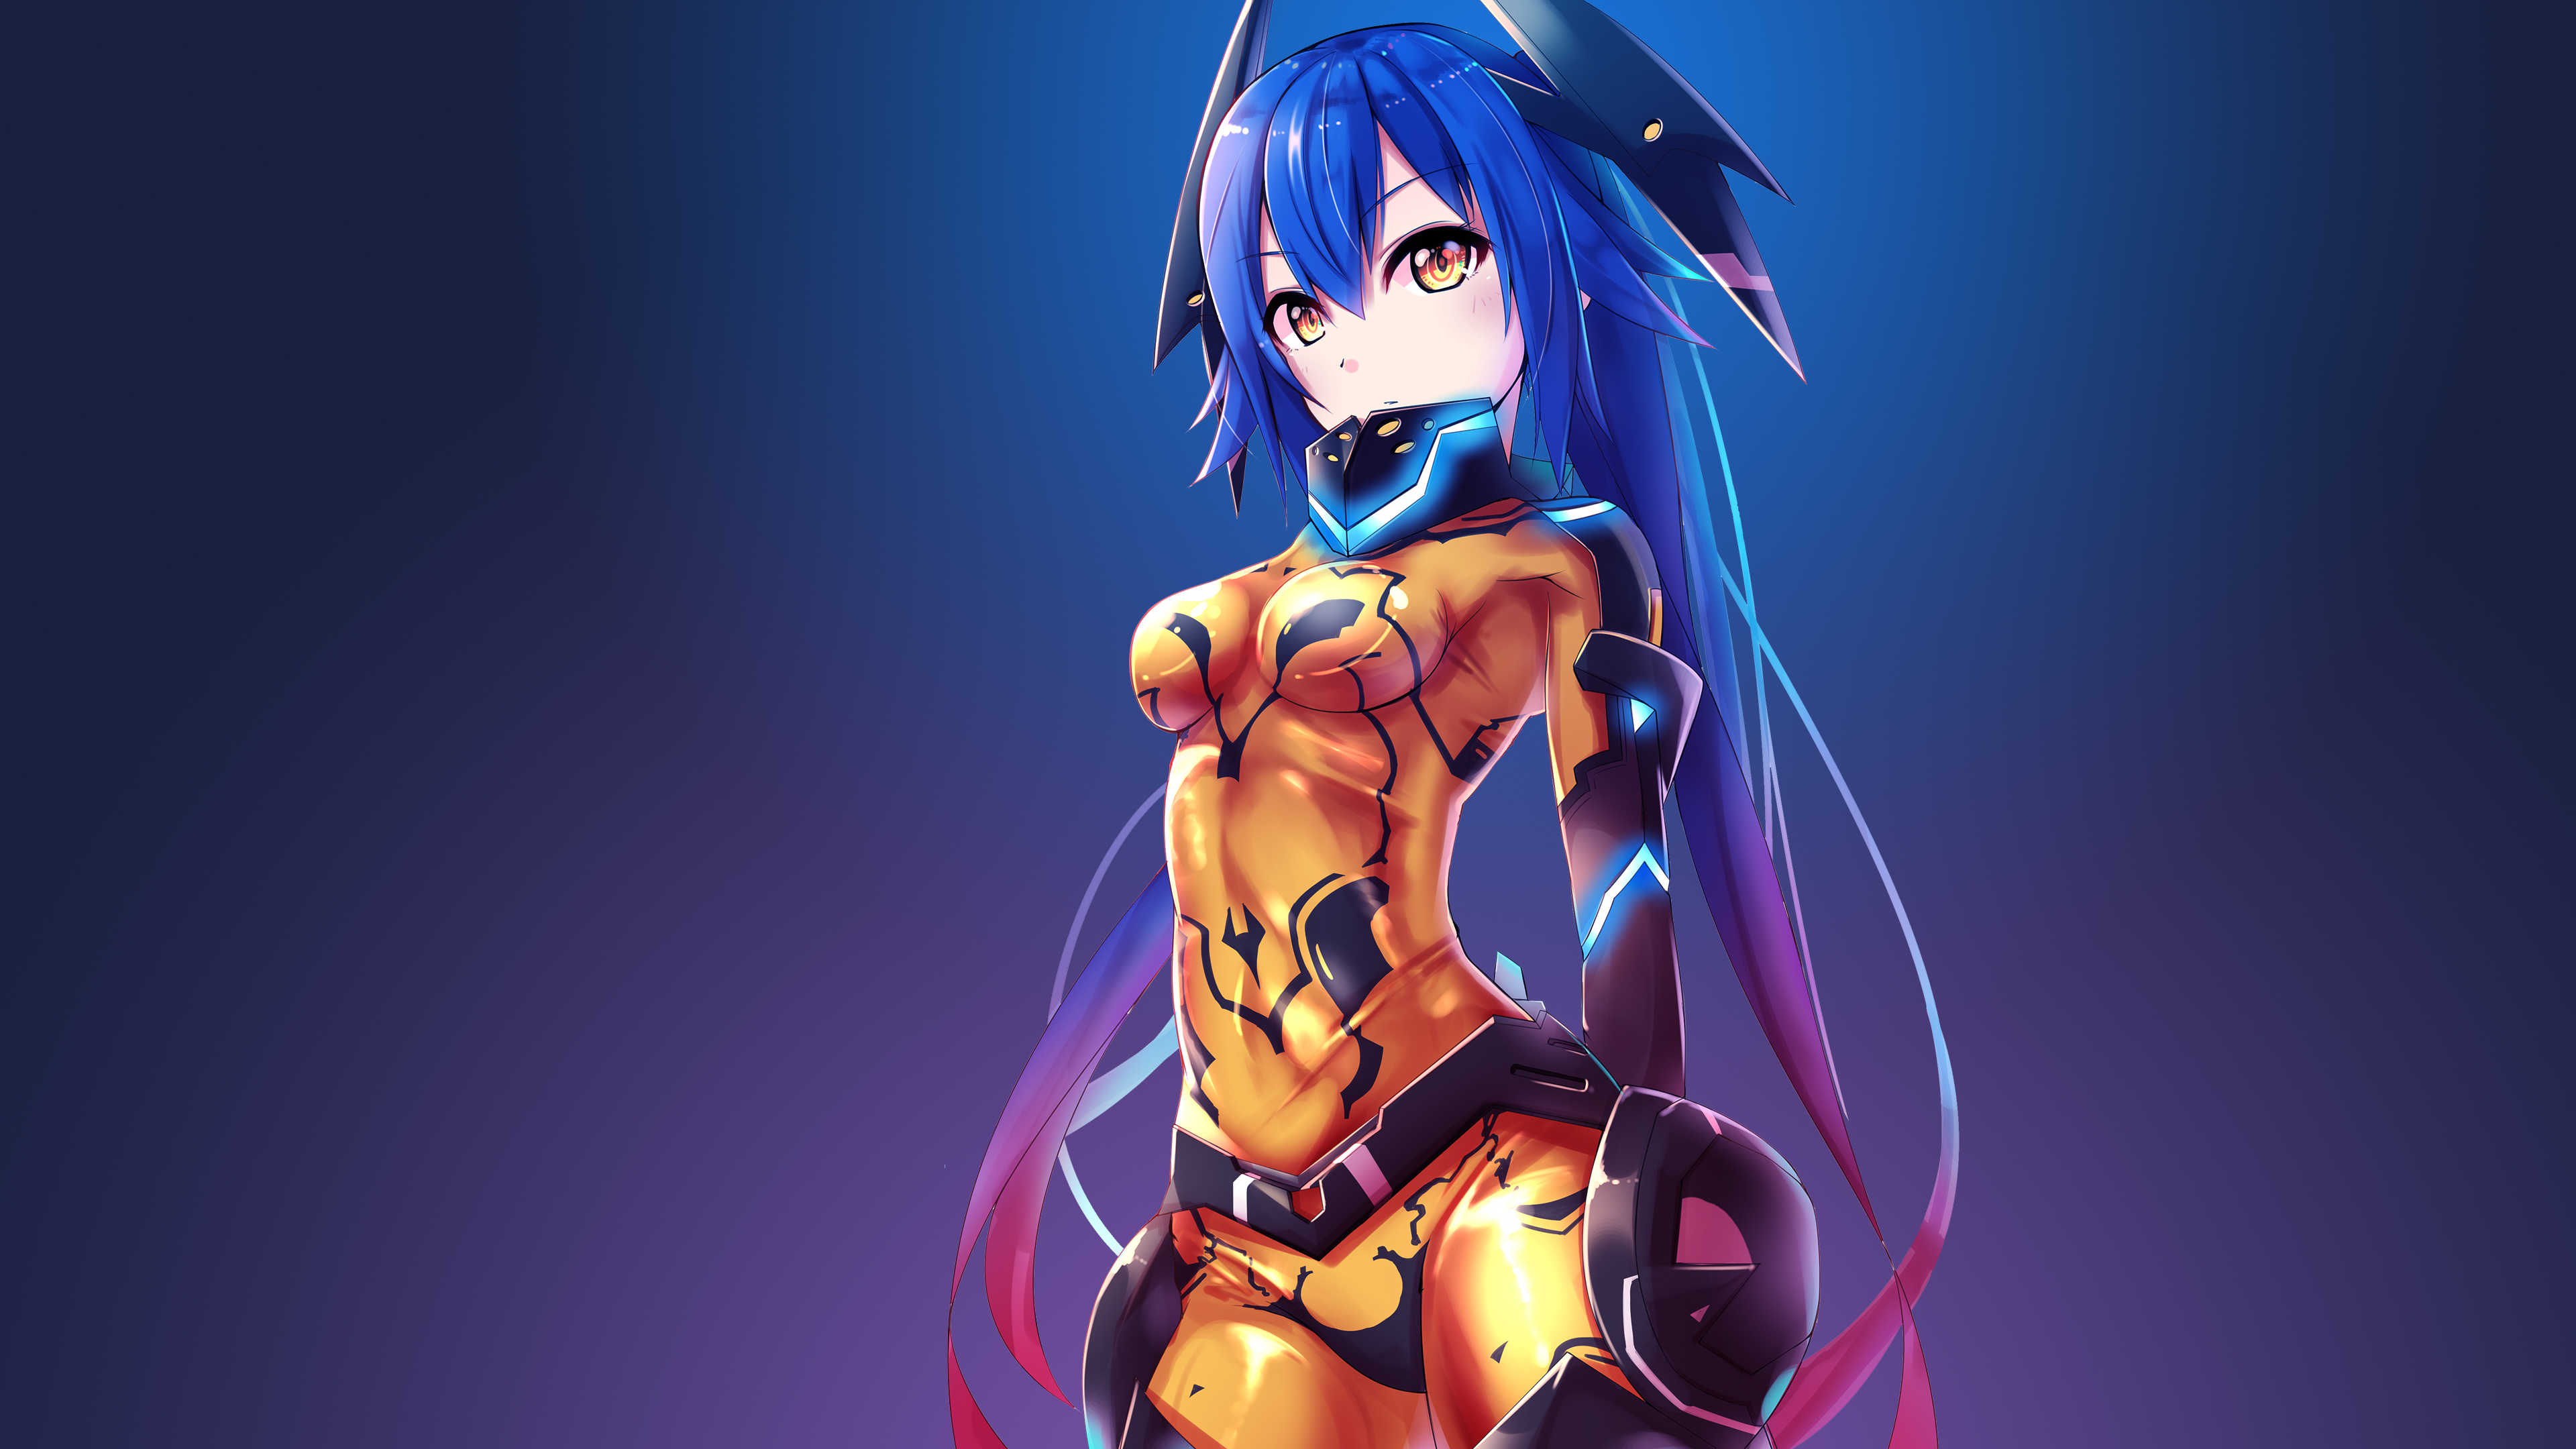 Phantasy Star Online Backgrounds on Wallpapers Vista